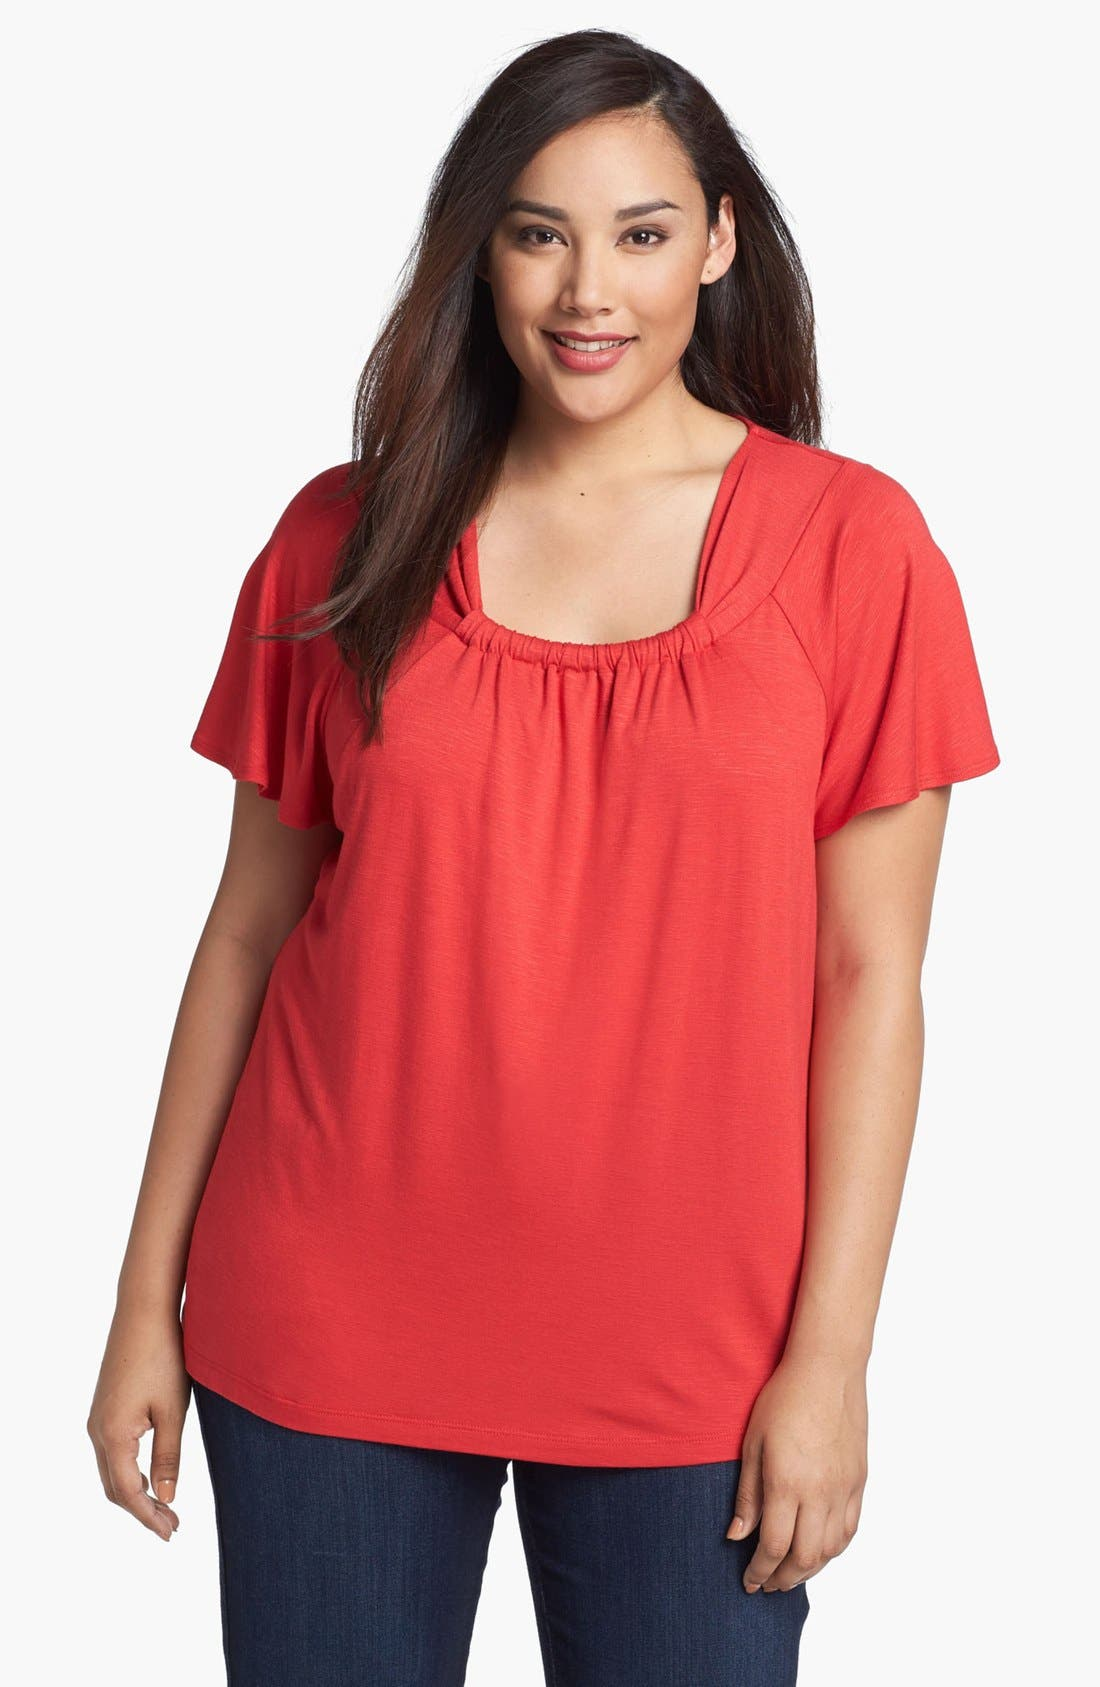 Alternate Image 1 Selected - Sejour Twist Neck Top (Plus Size)